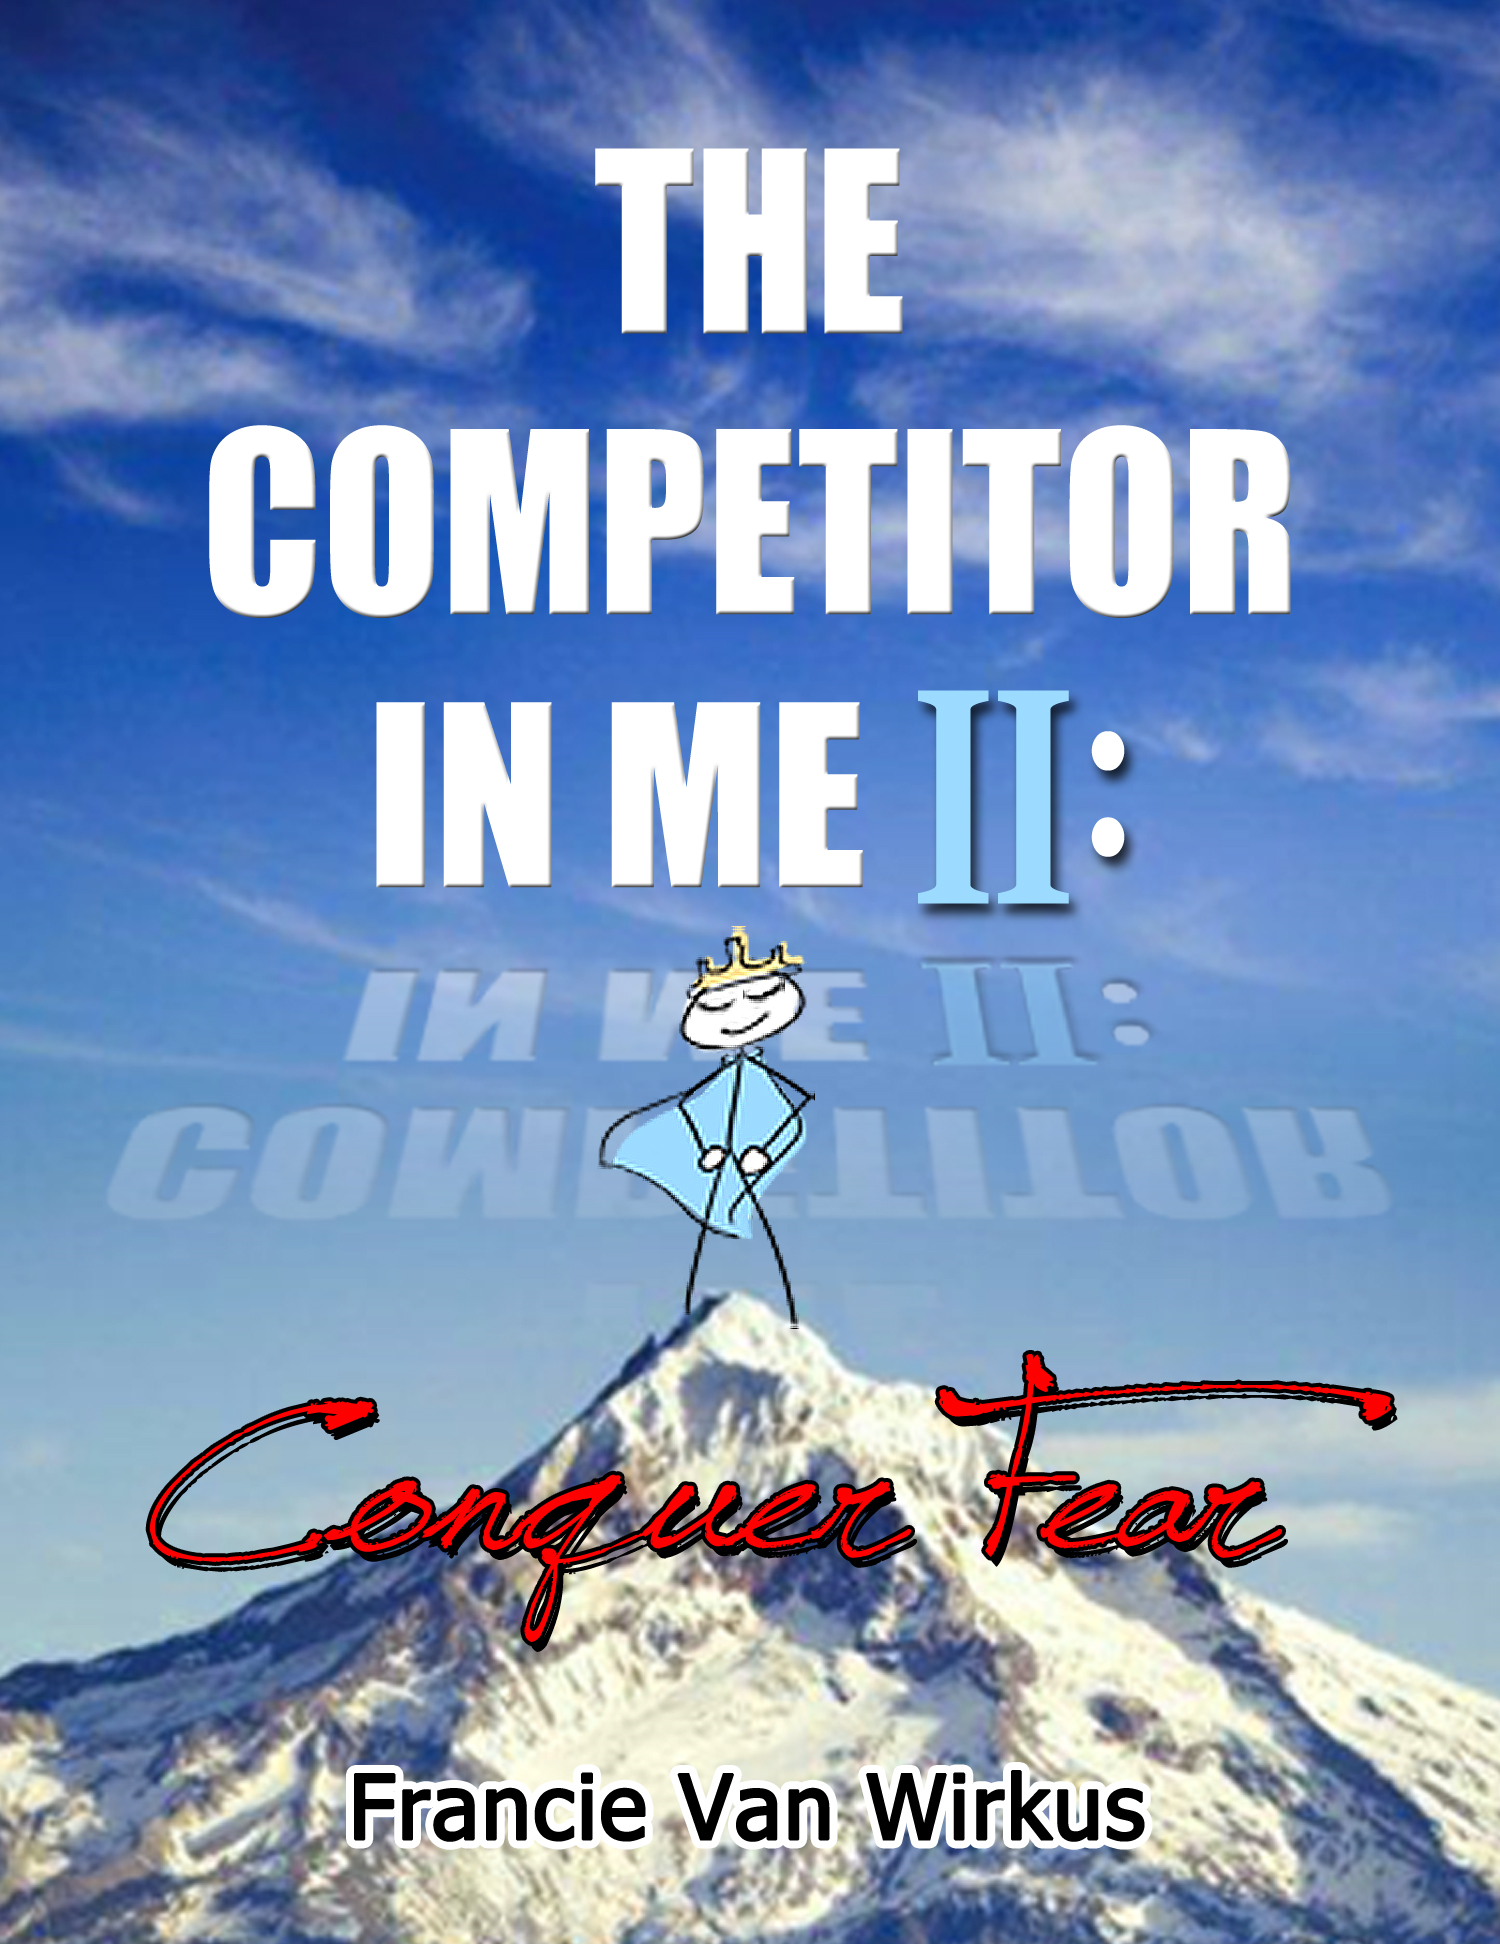 The Competitor in Me II: Conquer Fear